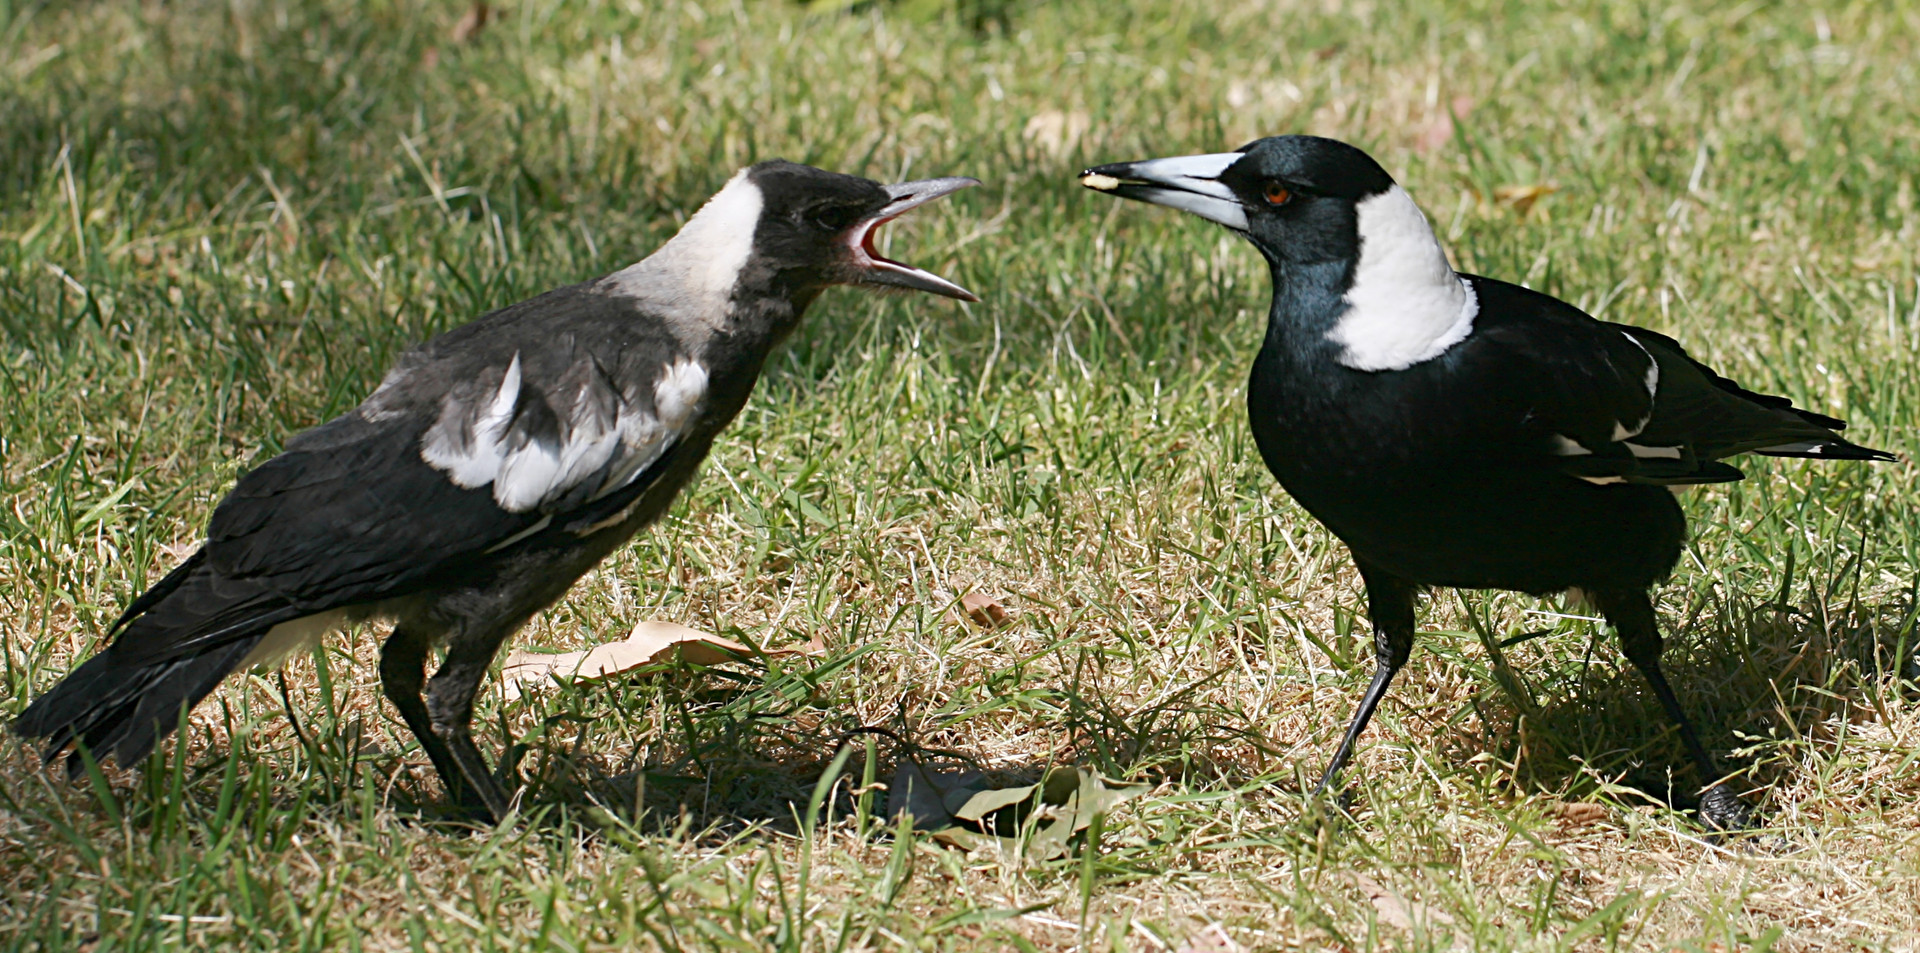 Adult Australian Magpie feeding young